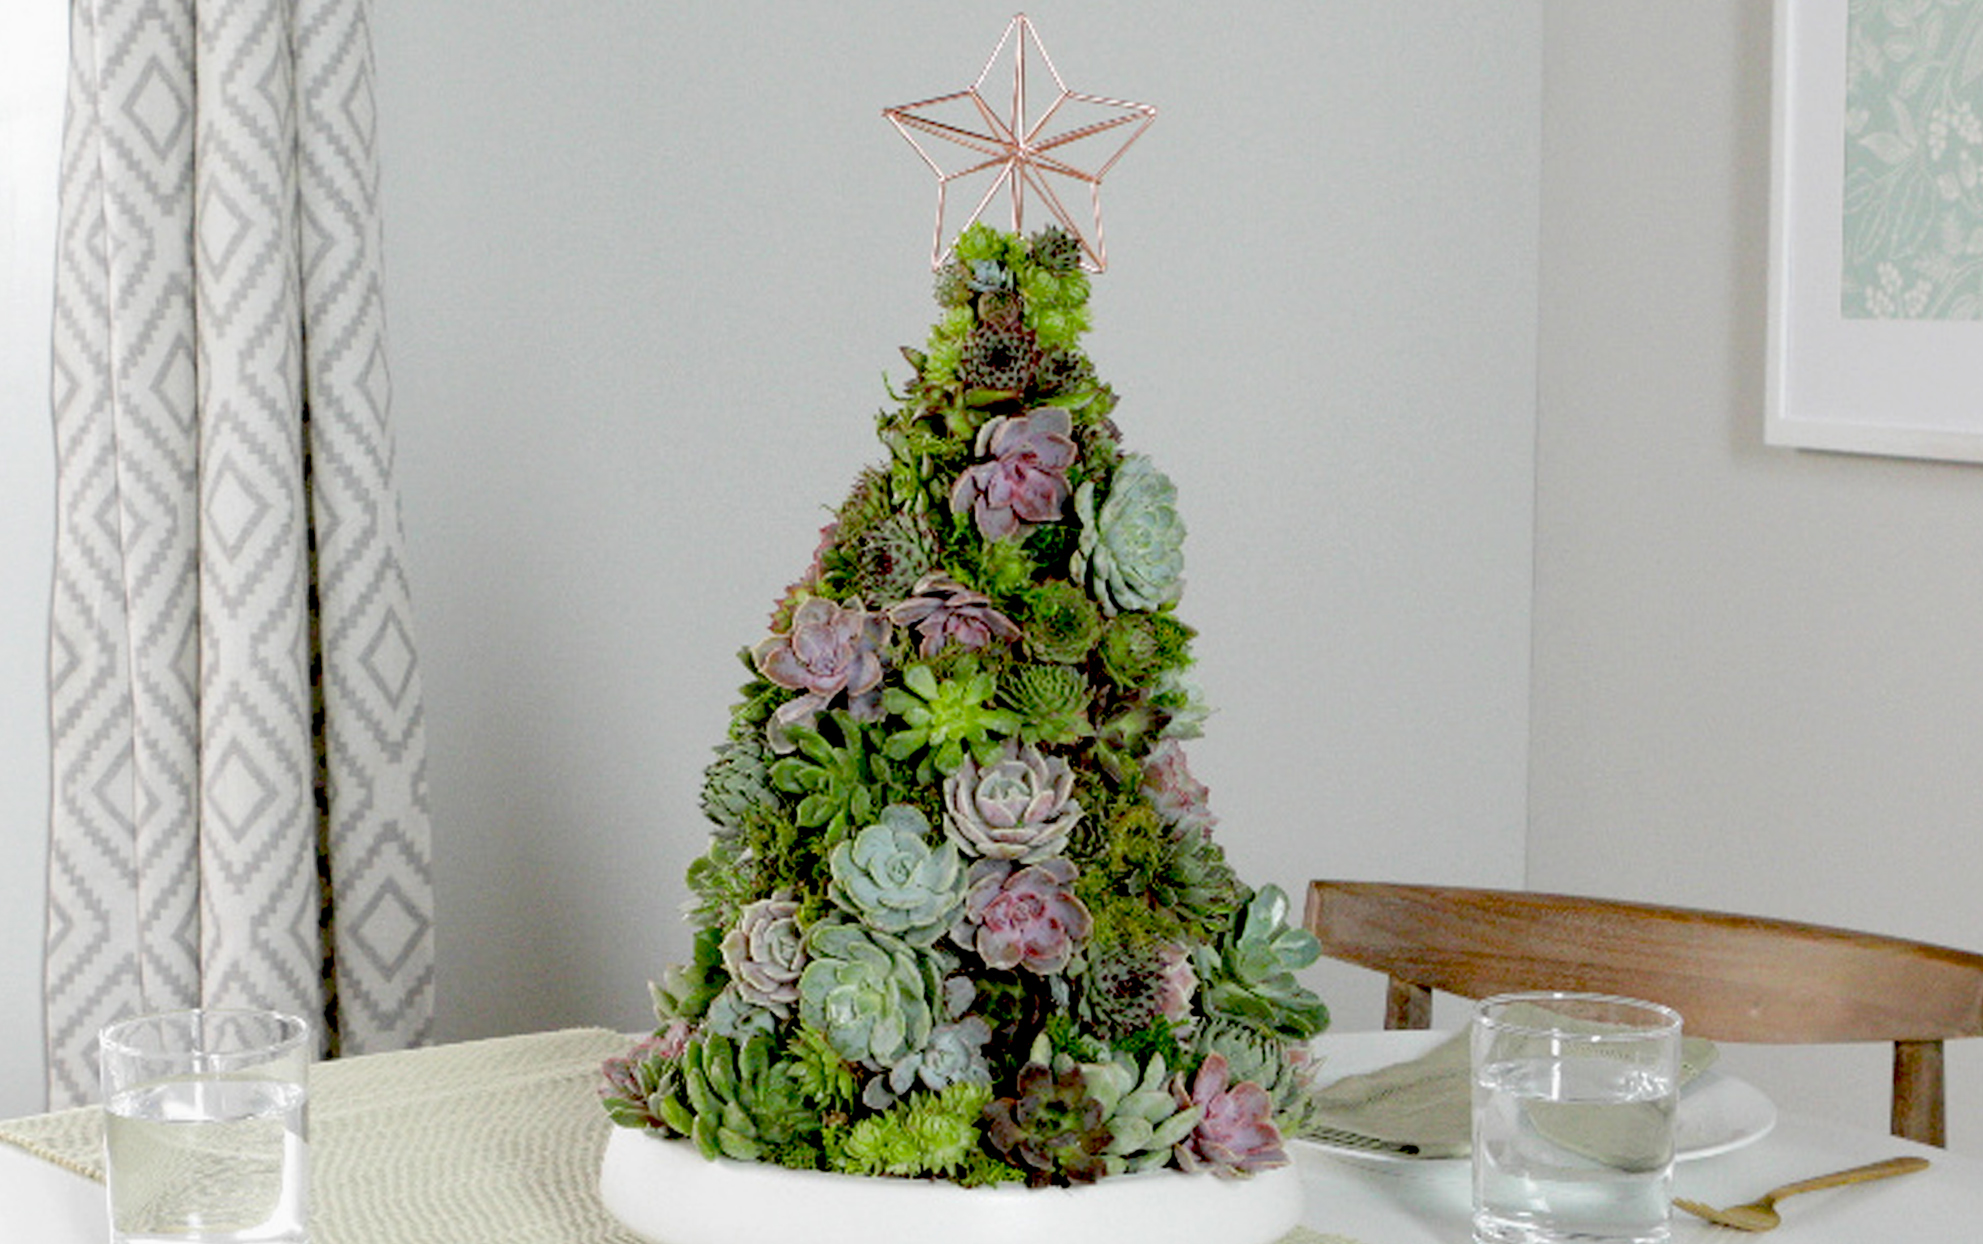 Succulent Christmas tree on a dining table